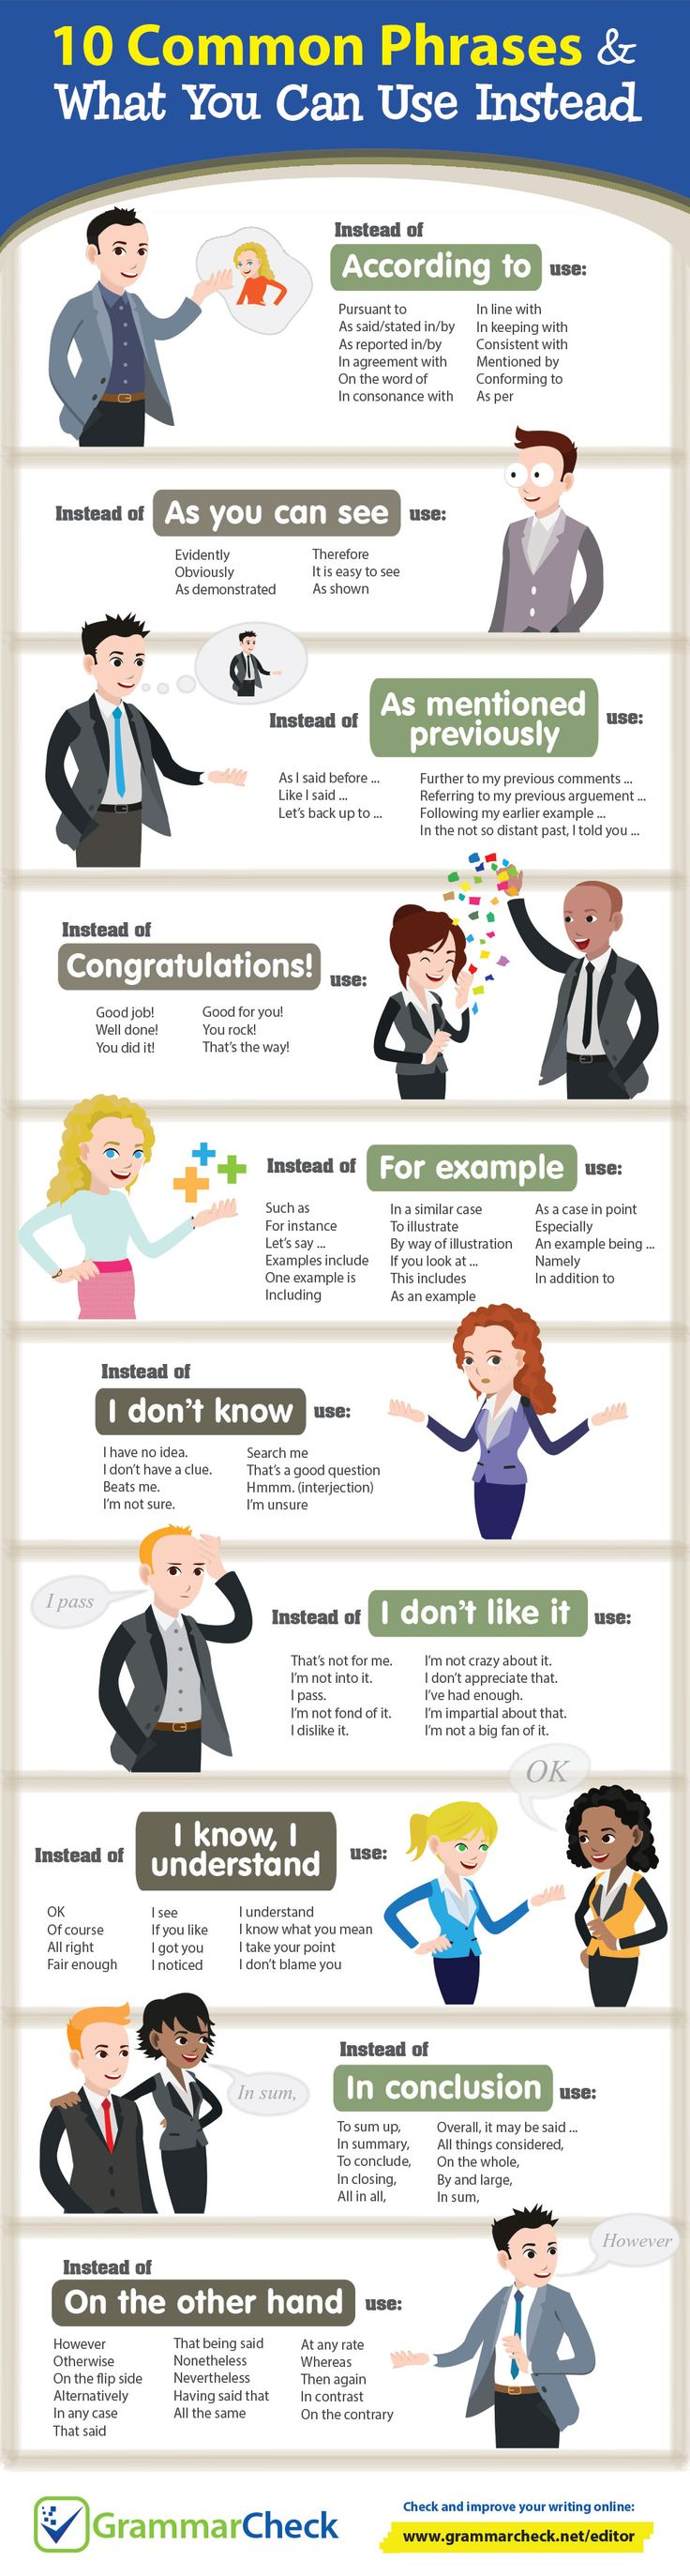 10 Common Phrases & What You Can Use Instead